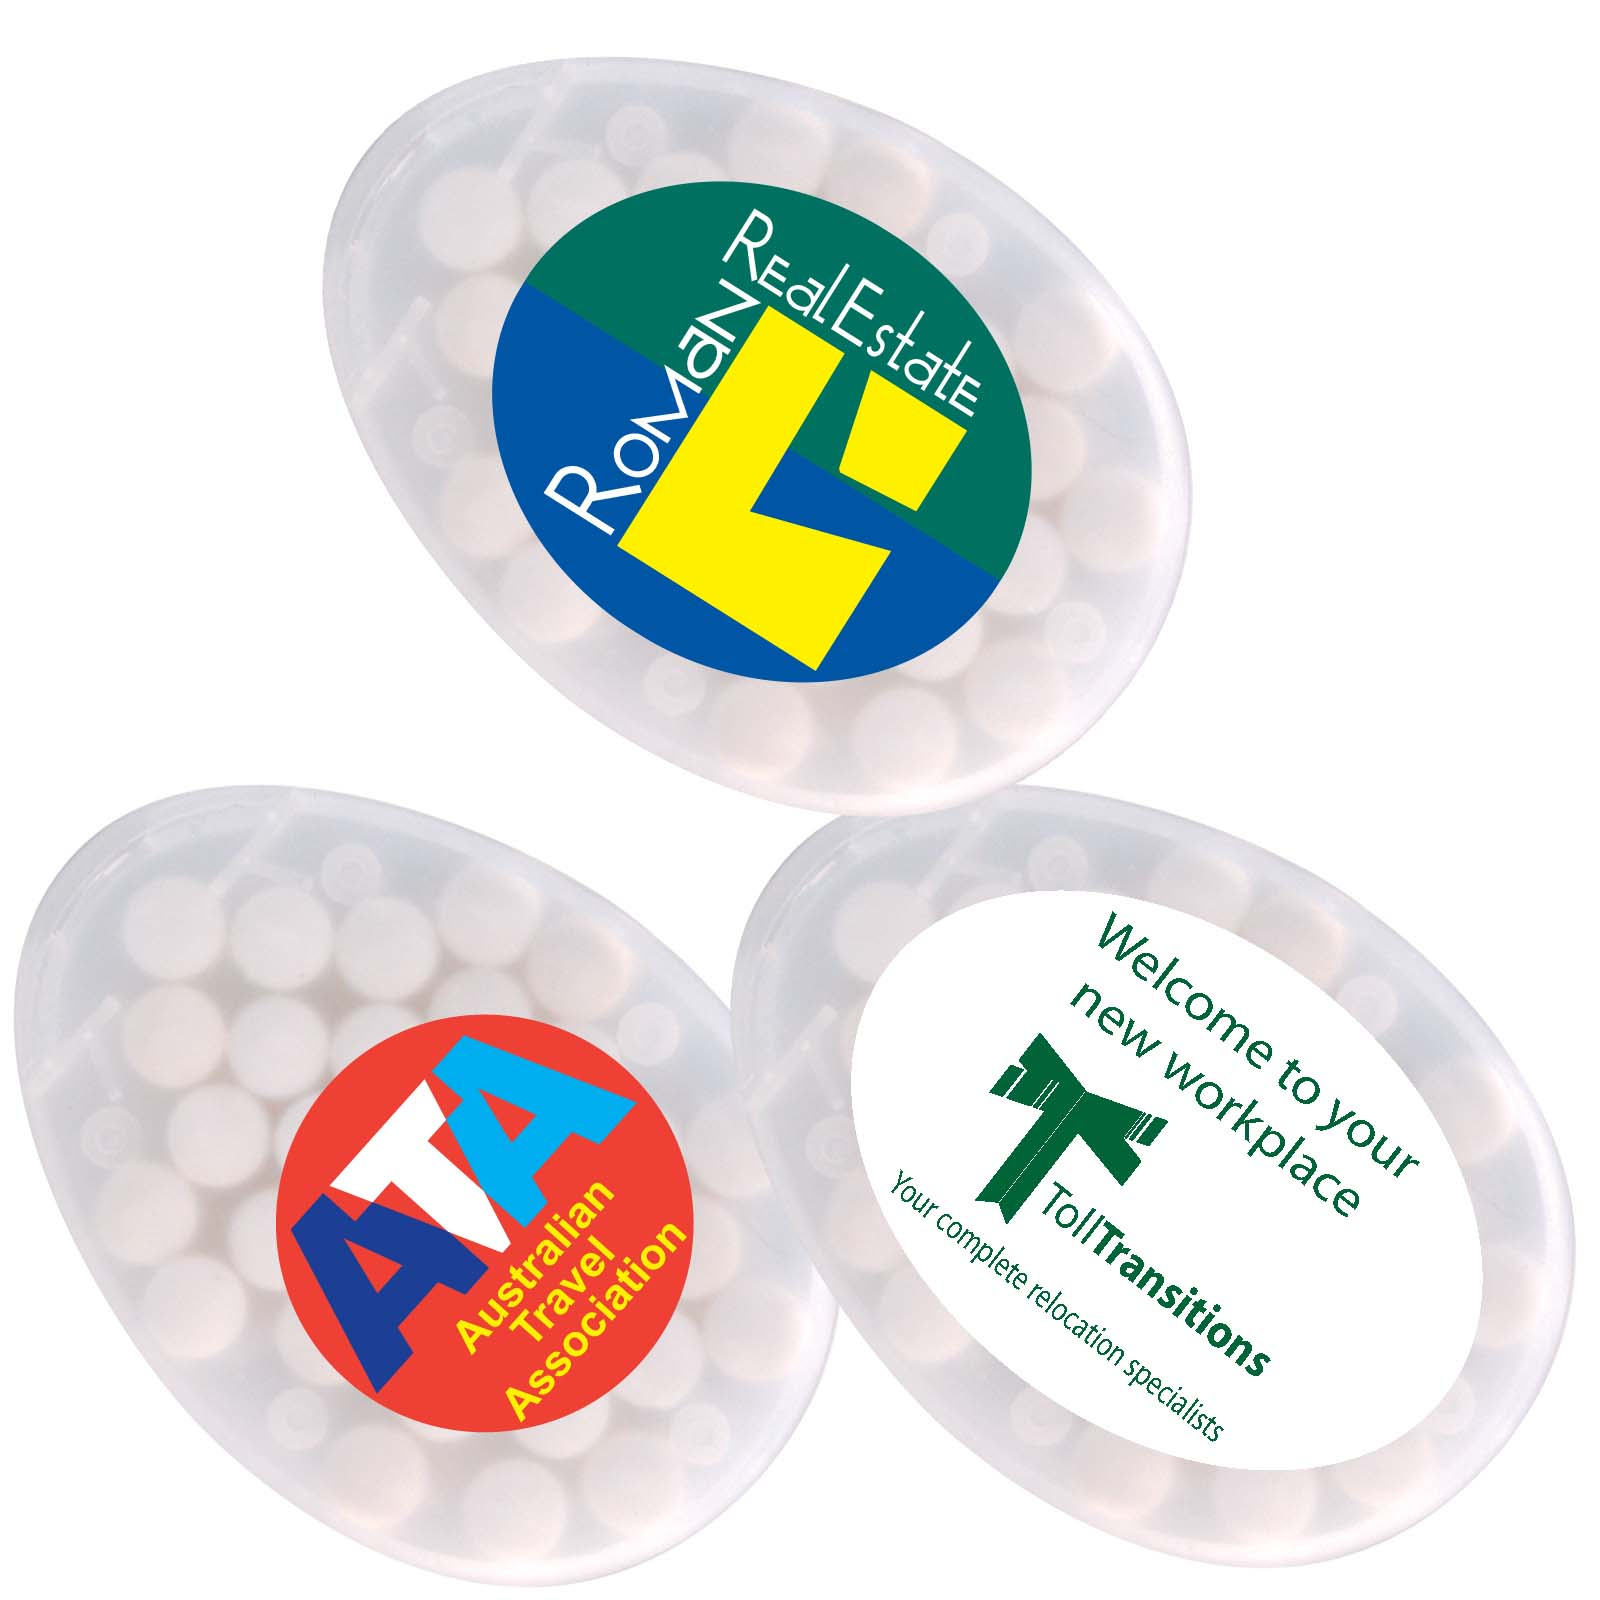 Egg Shape Sugar Free Breath Mints - Includes a full colour logo, From $0.7